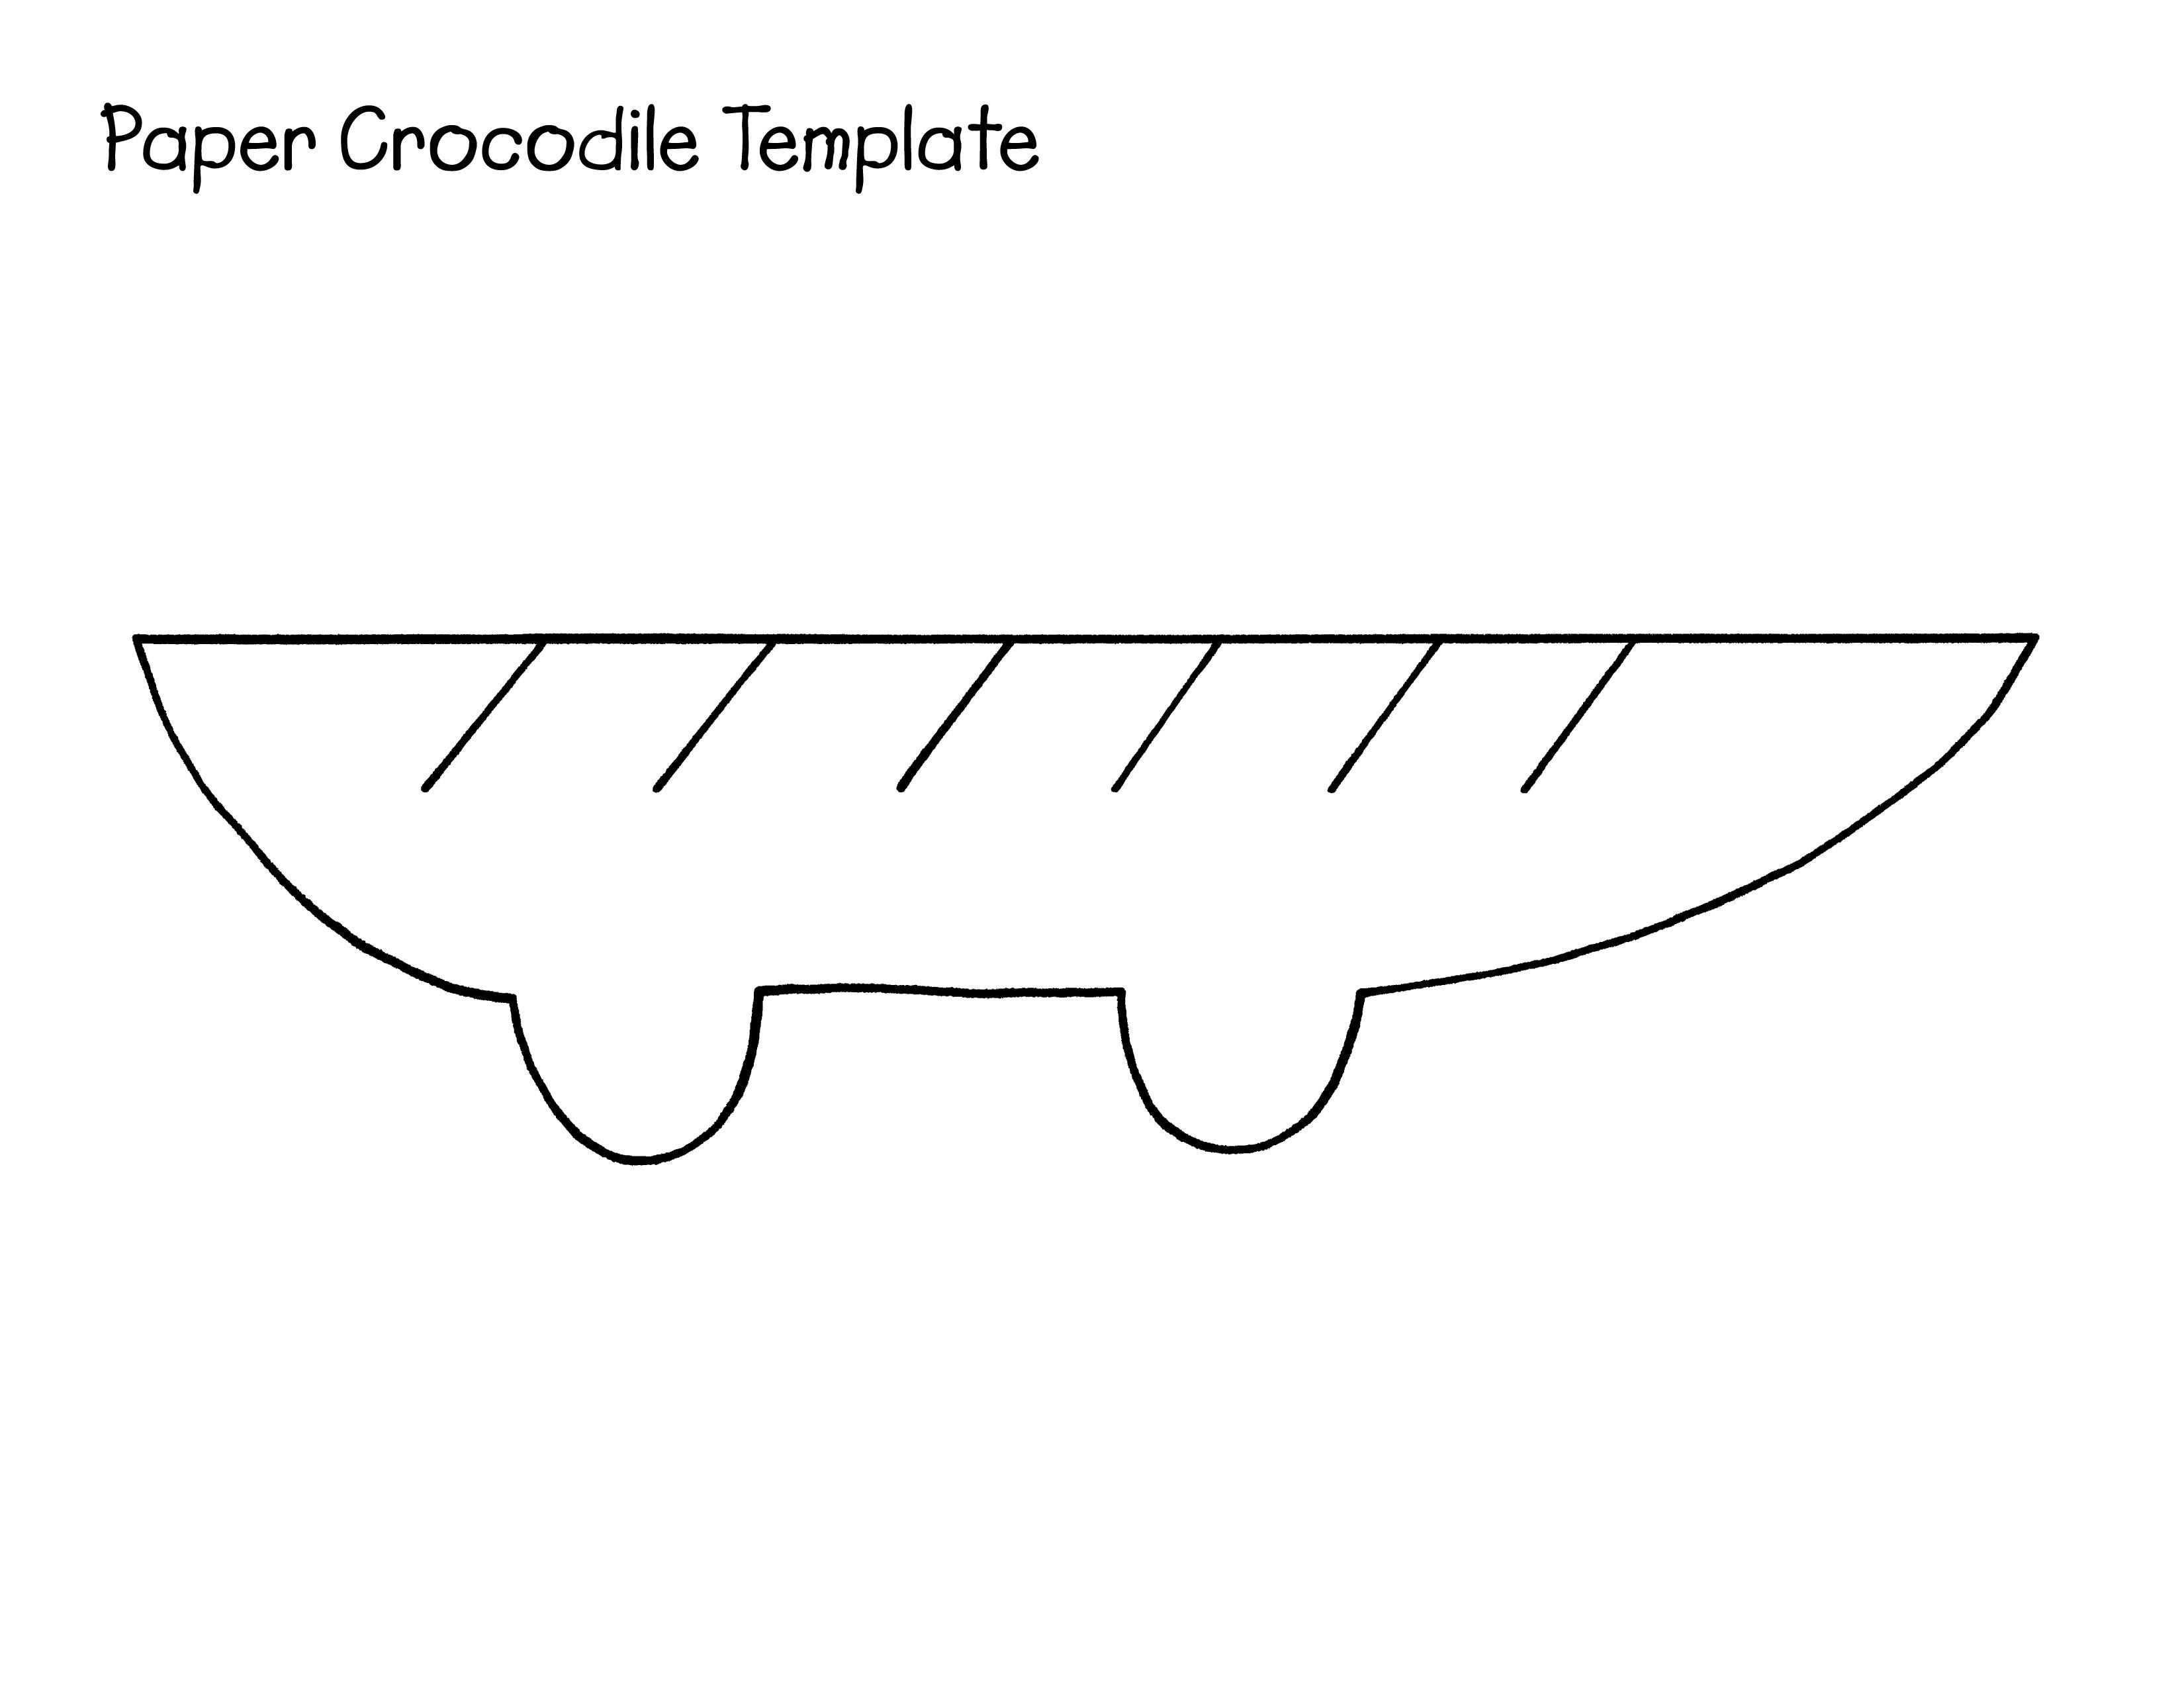 Tamplate 4 The Paper Crocodile